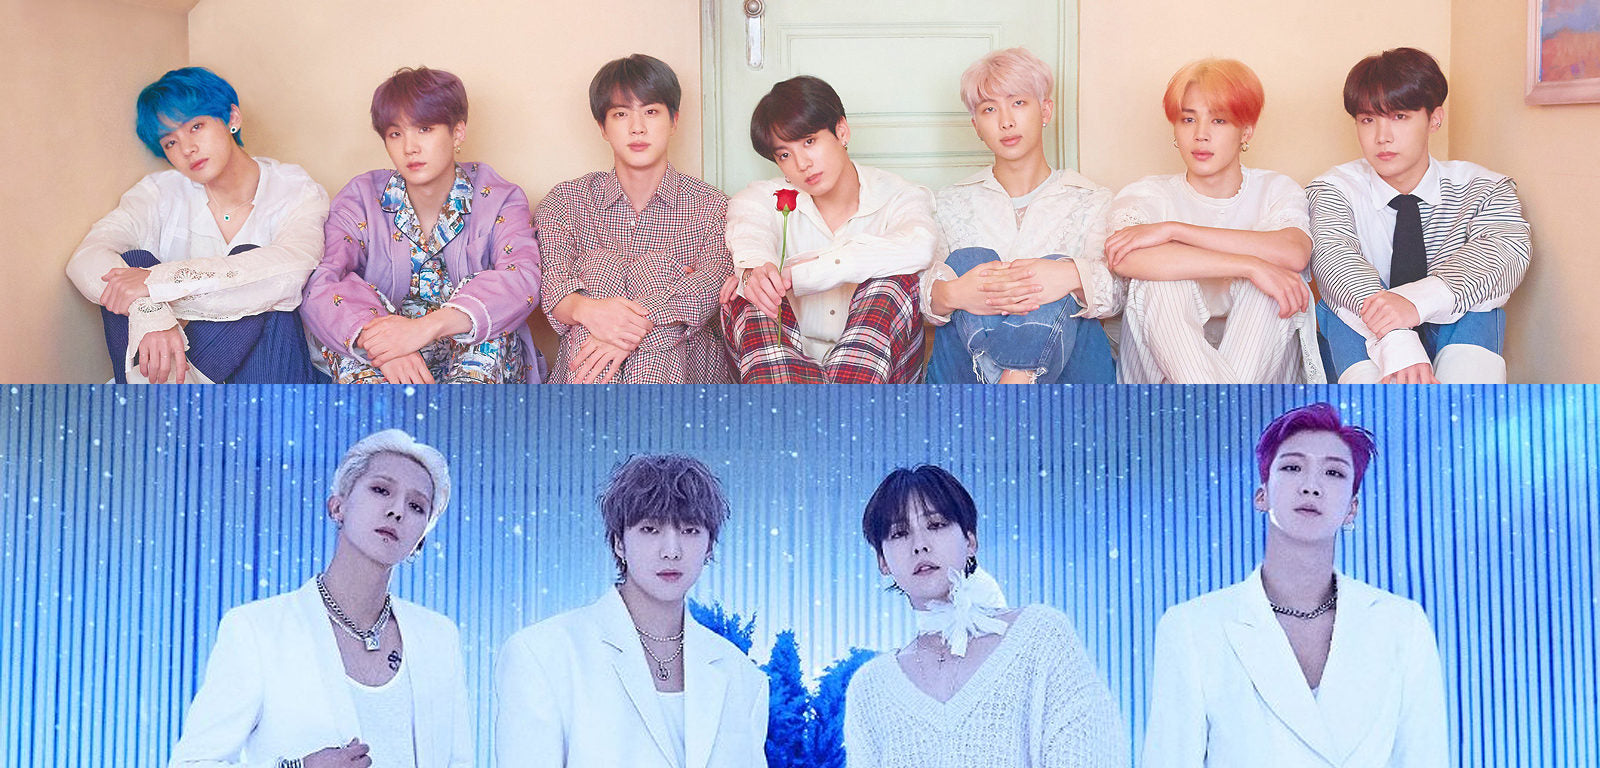 The most downloaded Kpop male band songs in 2019? - Kpopshop